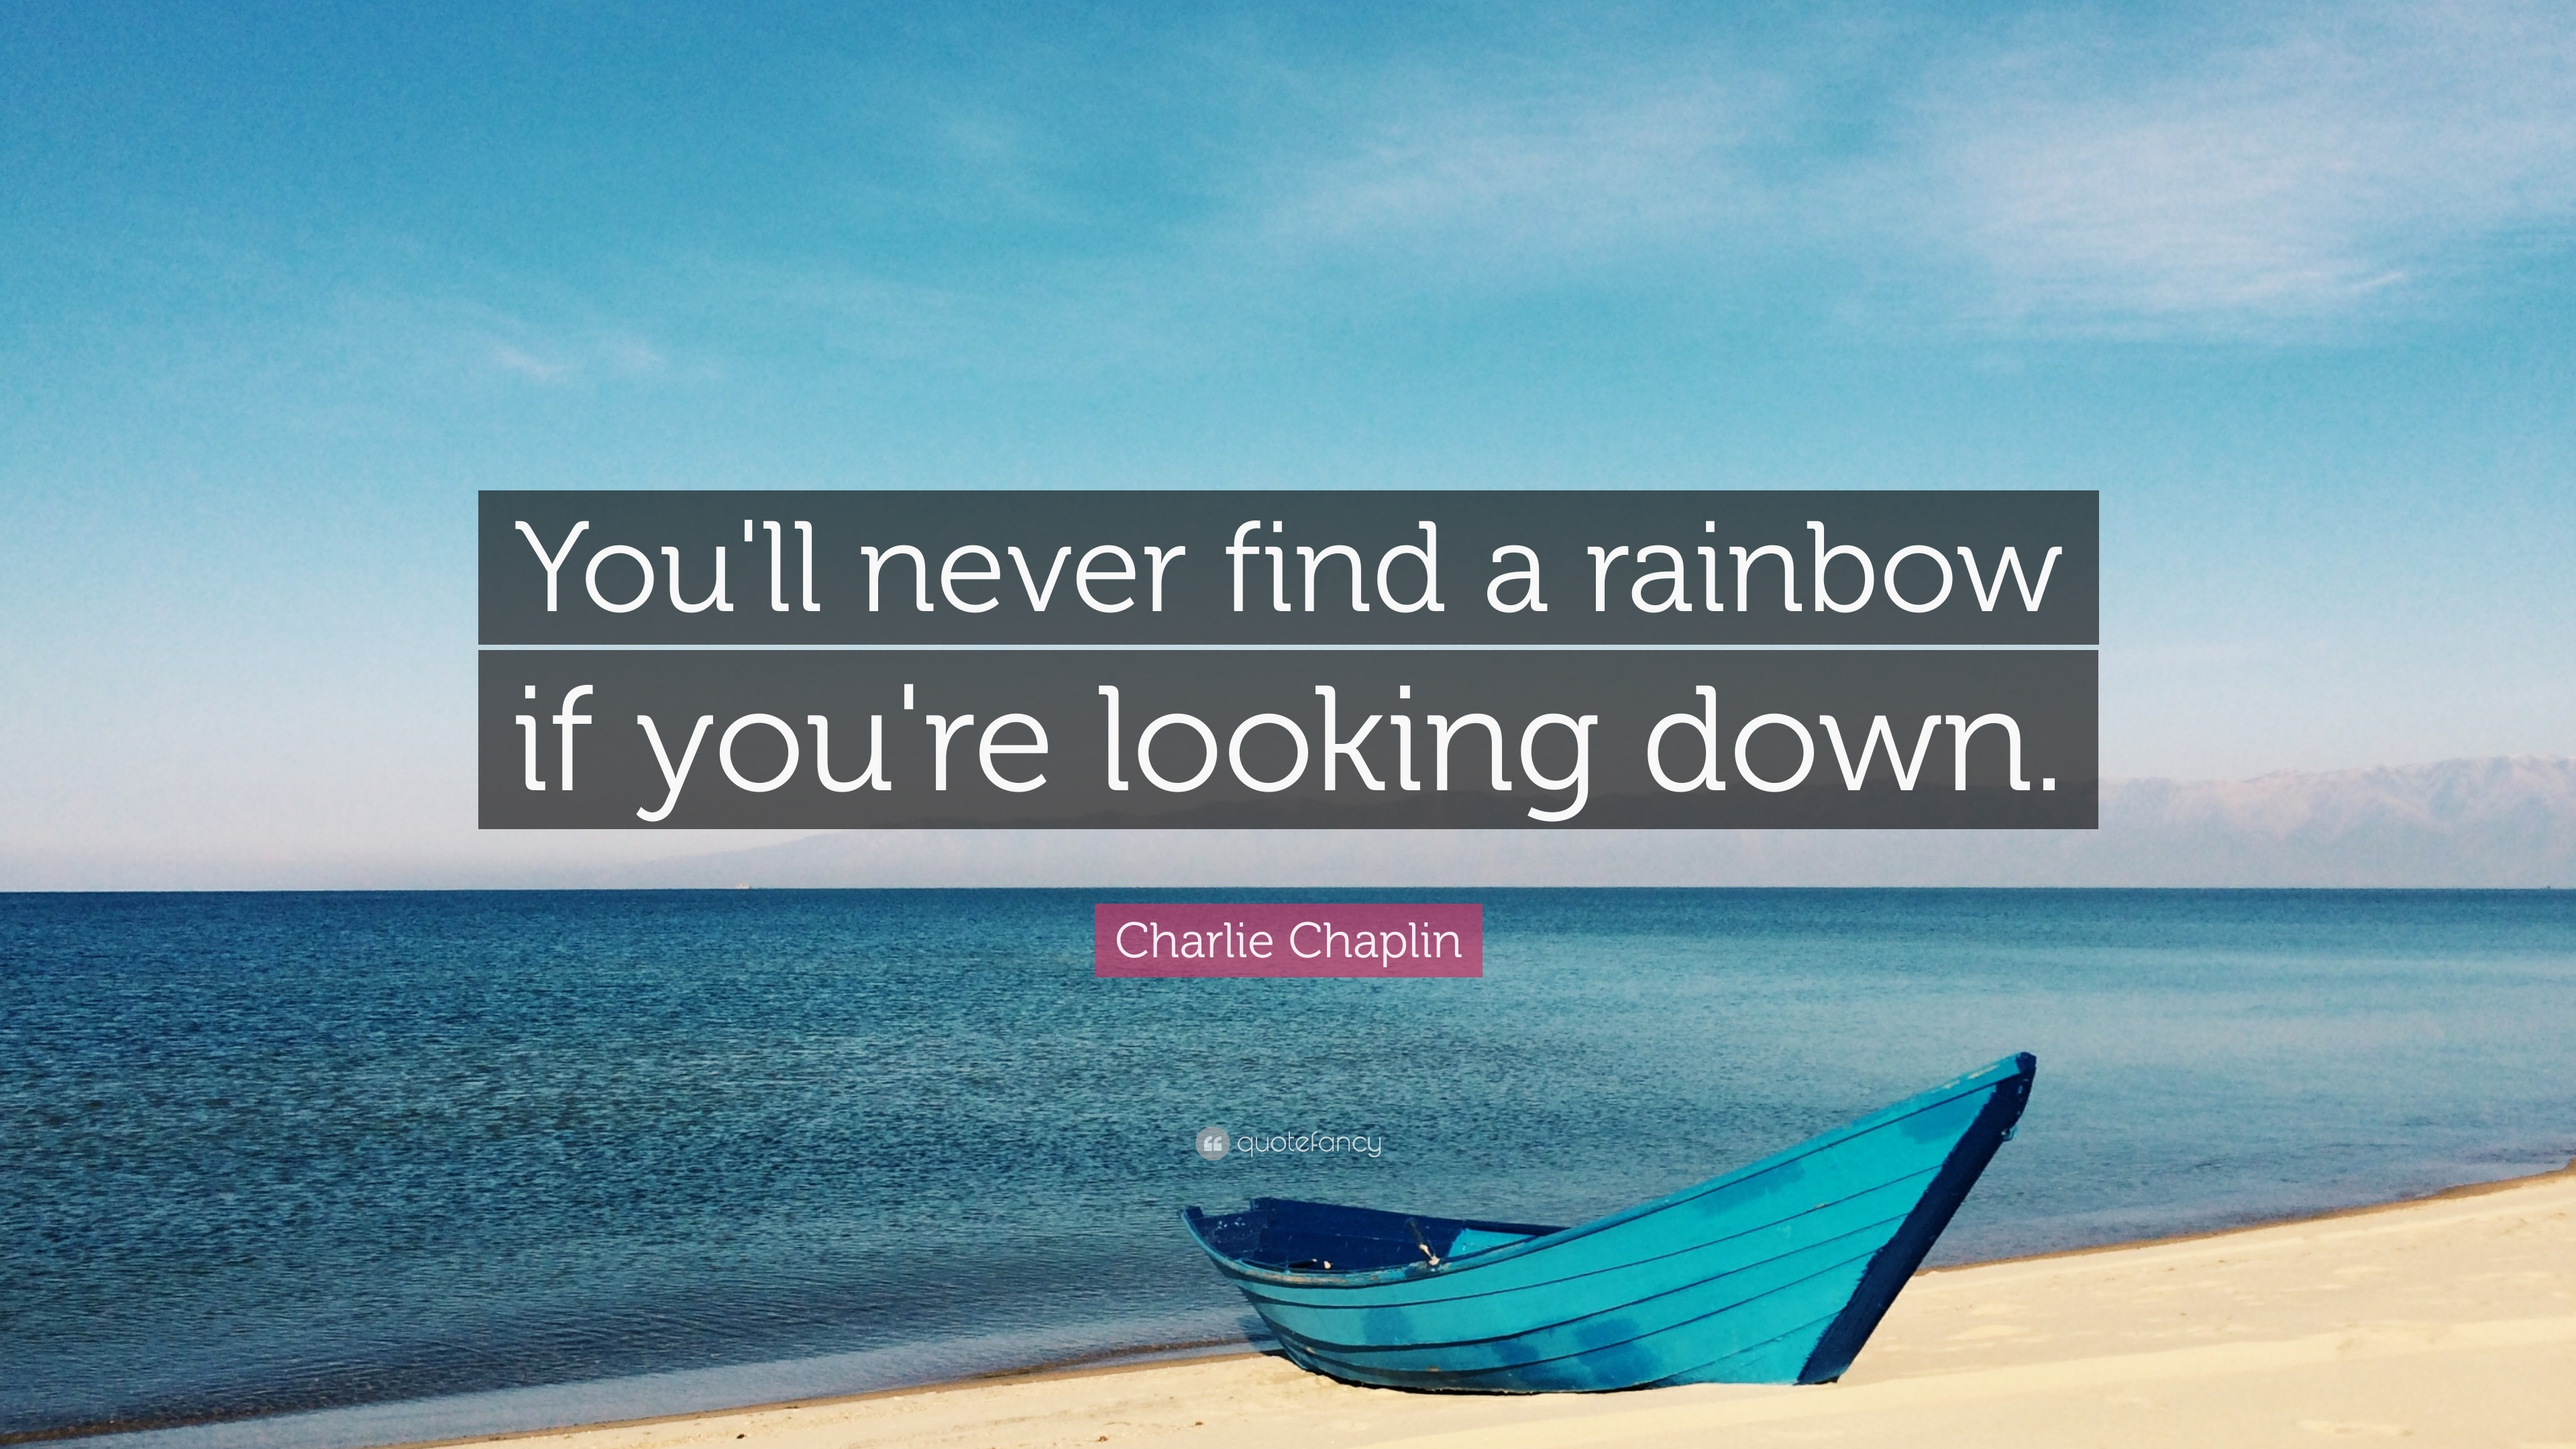 1707389-Charlie-Chaplin-Quote-You-ll-never-find-a-rainbow-if-you-re.jpg